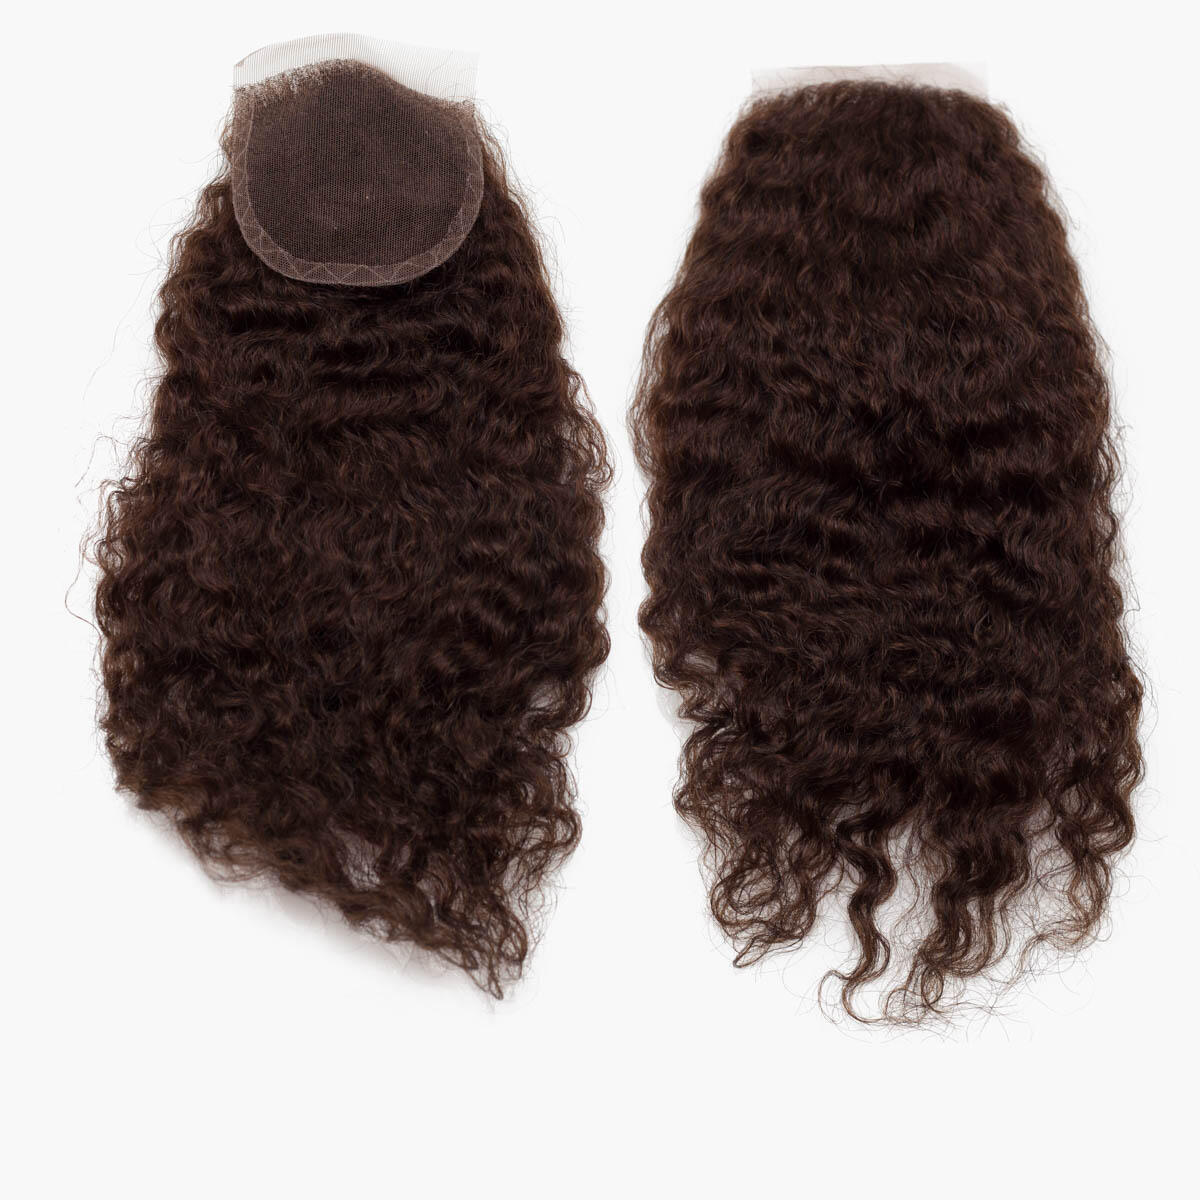 Lace Closure Curly Curls 2.2 Coffee Brown 35 cm